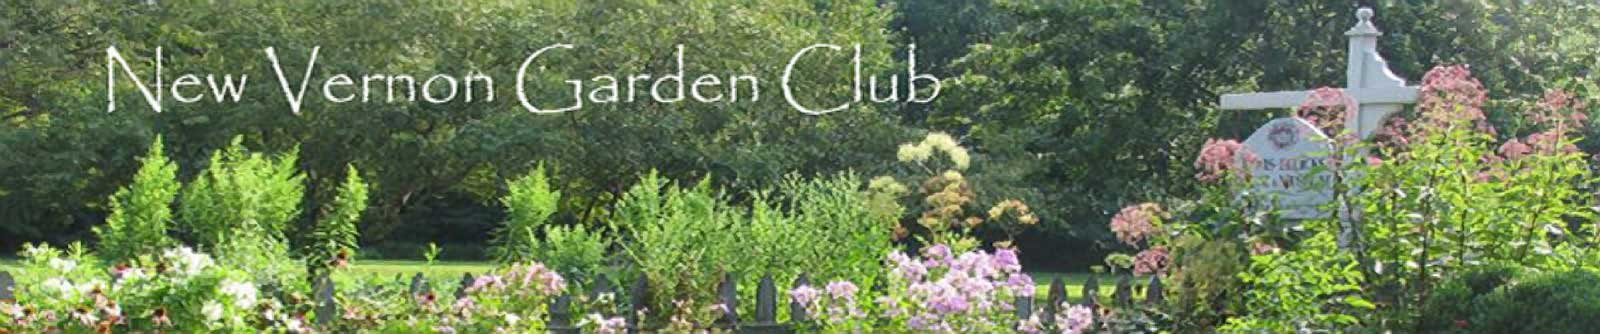 New Vernon Garden Club of New Jersey